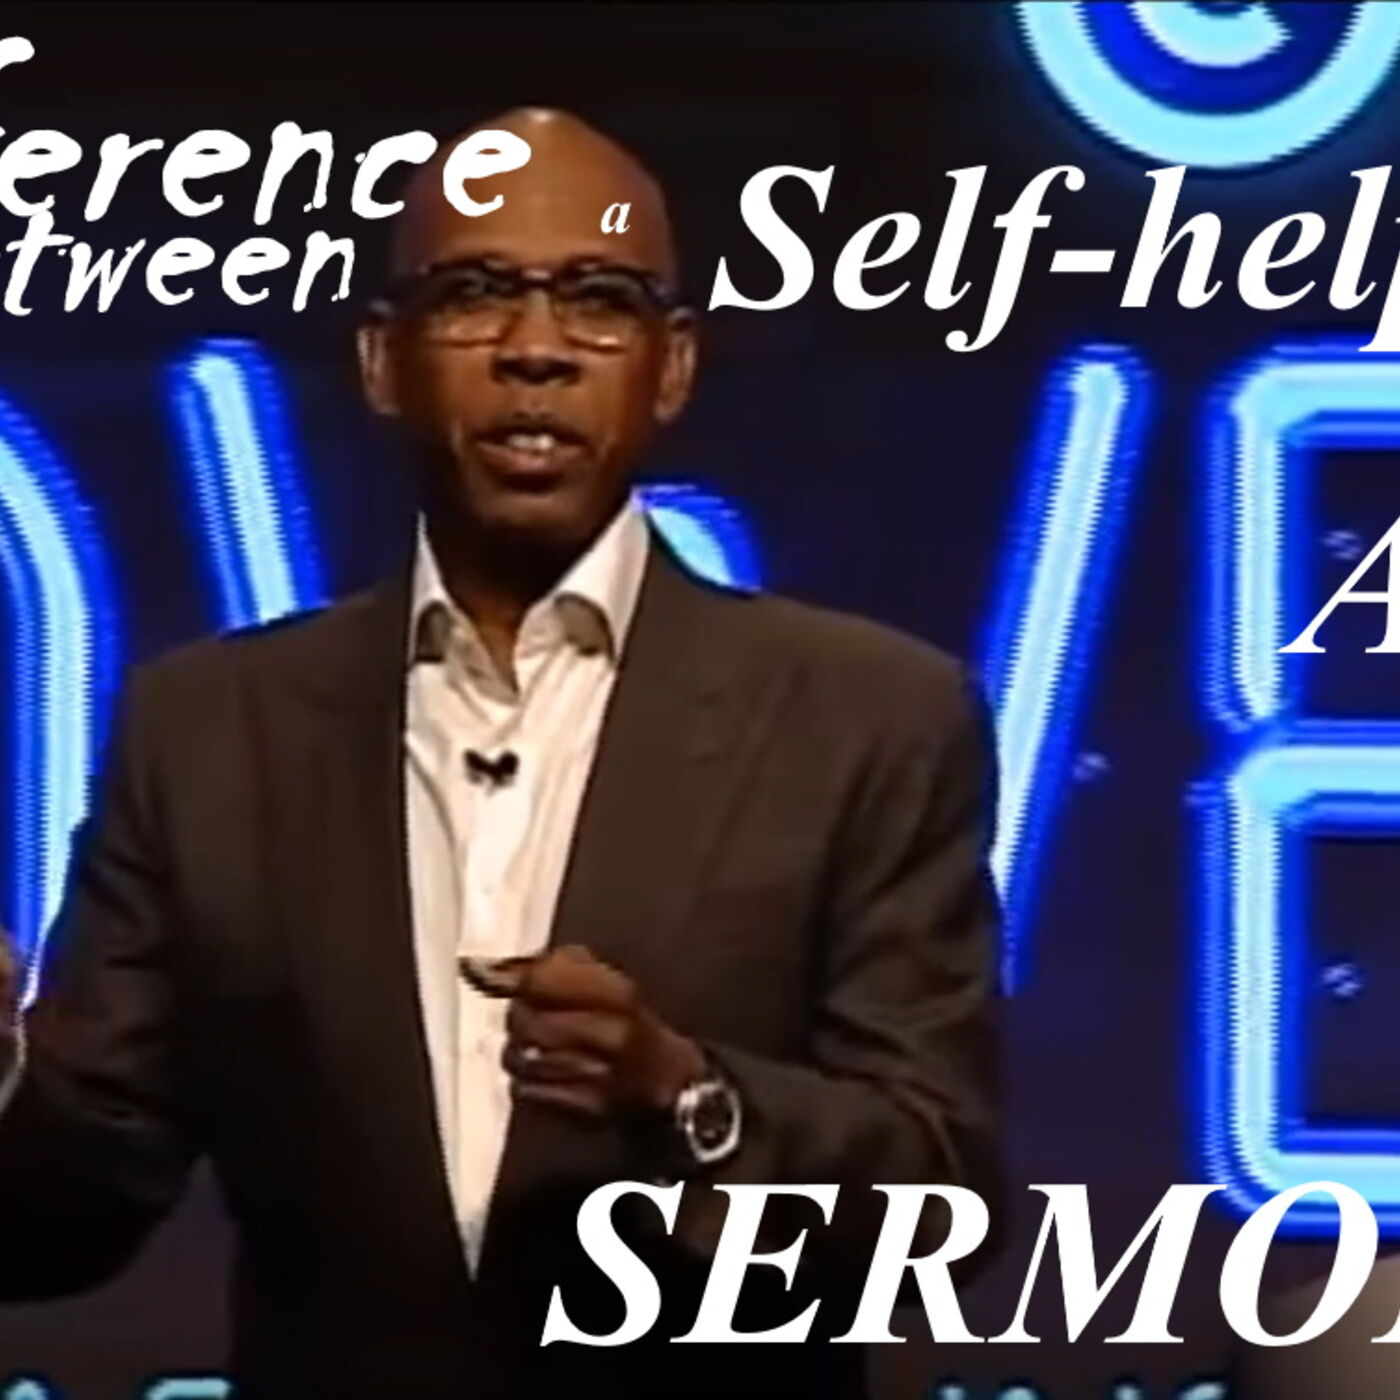 The Difference Between a Self Help Lecture and a Sermon